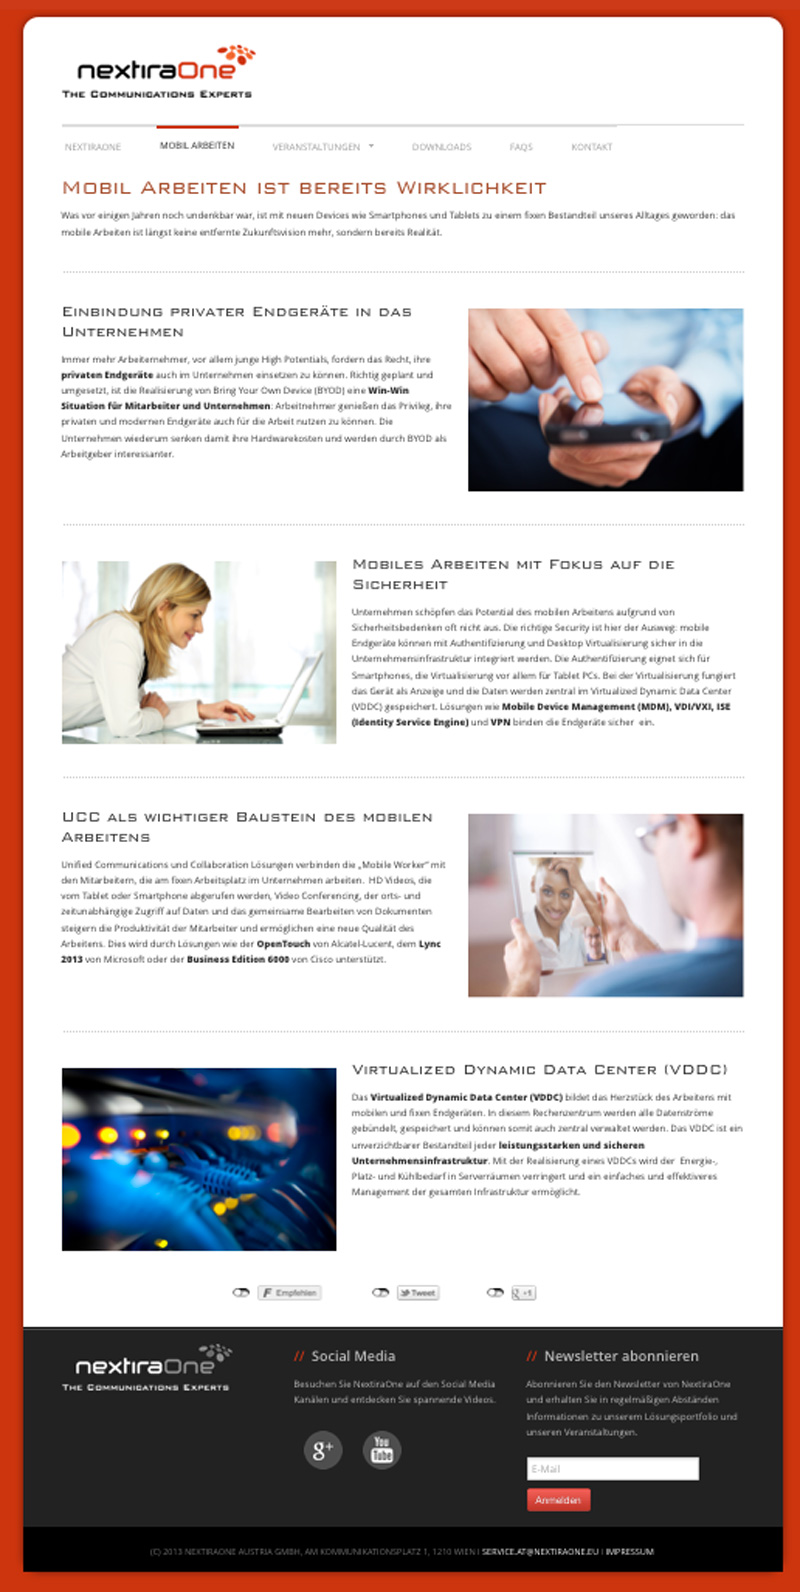 MobileArbeiten_Websites_Screen02